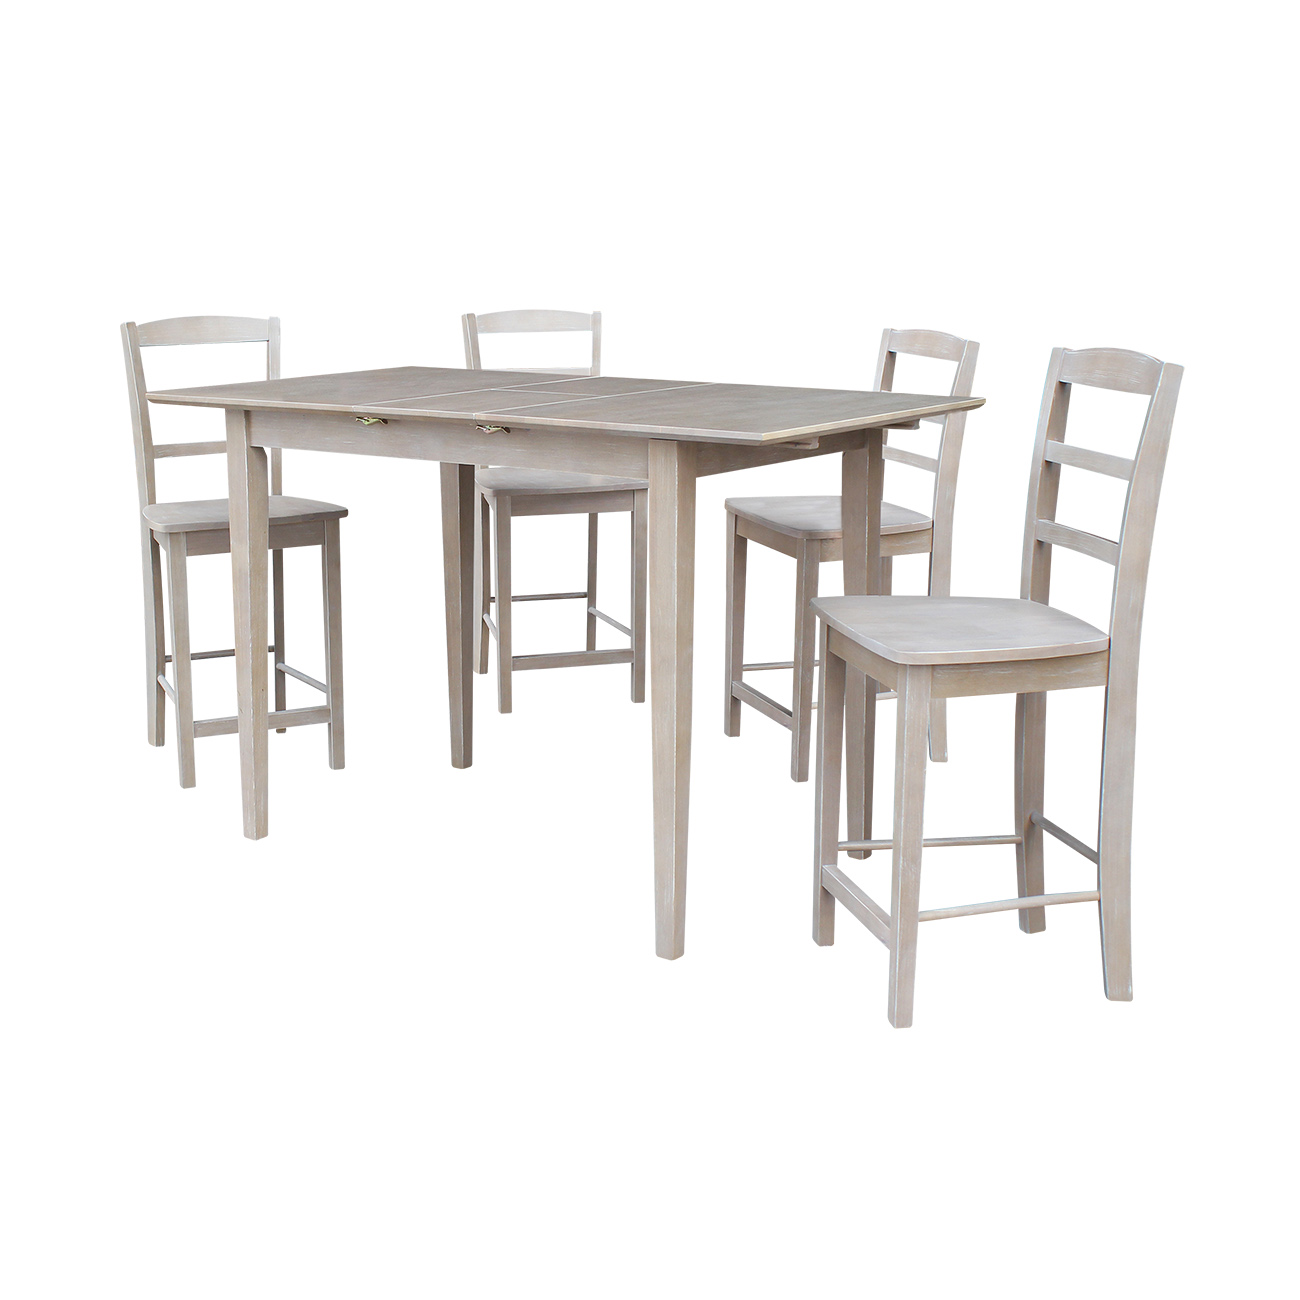 Solid Wood Counter Height Table With 12 Butterfly Leaf And 4 San Remo Stools Washed Gray Taupe 5 Piece Set Walmart Com Walmart Com